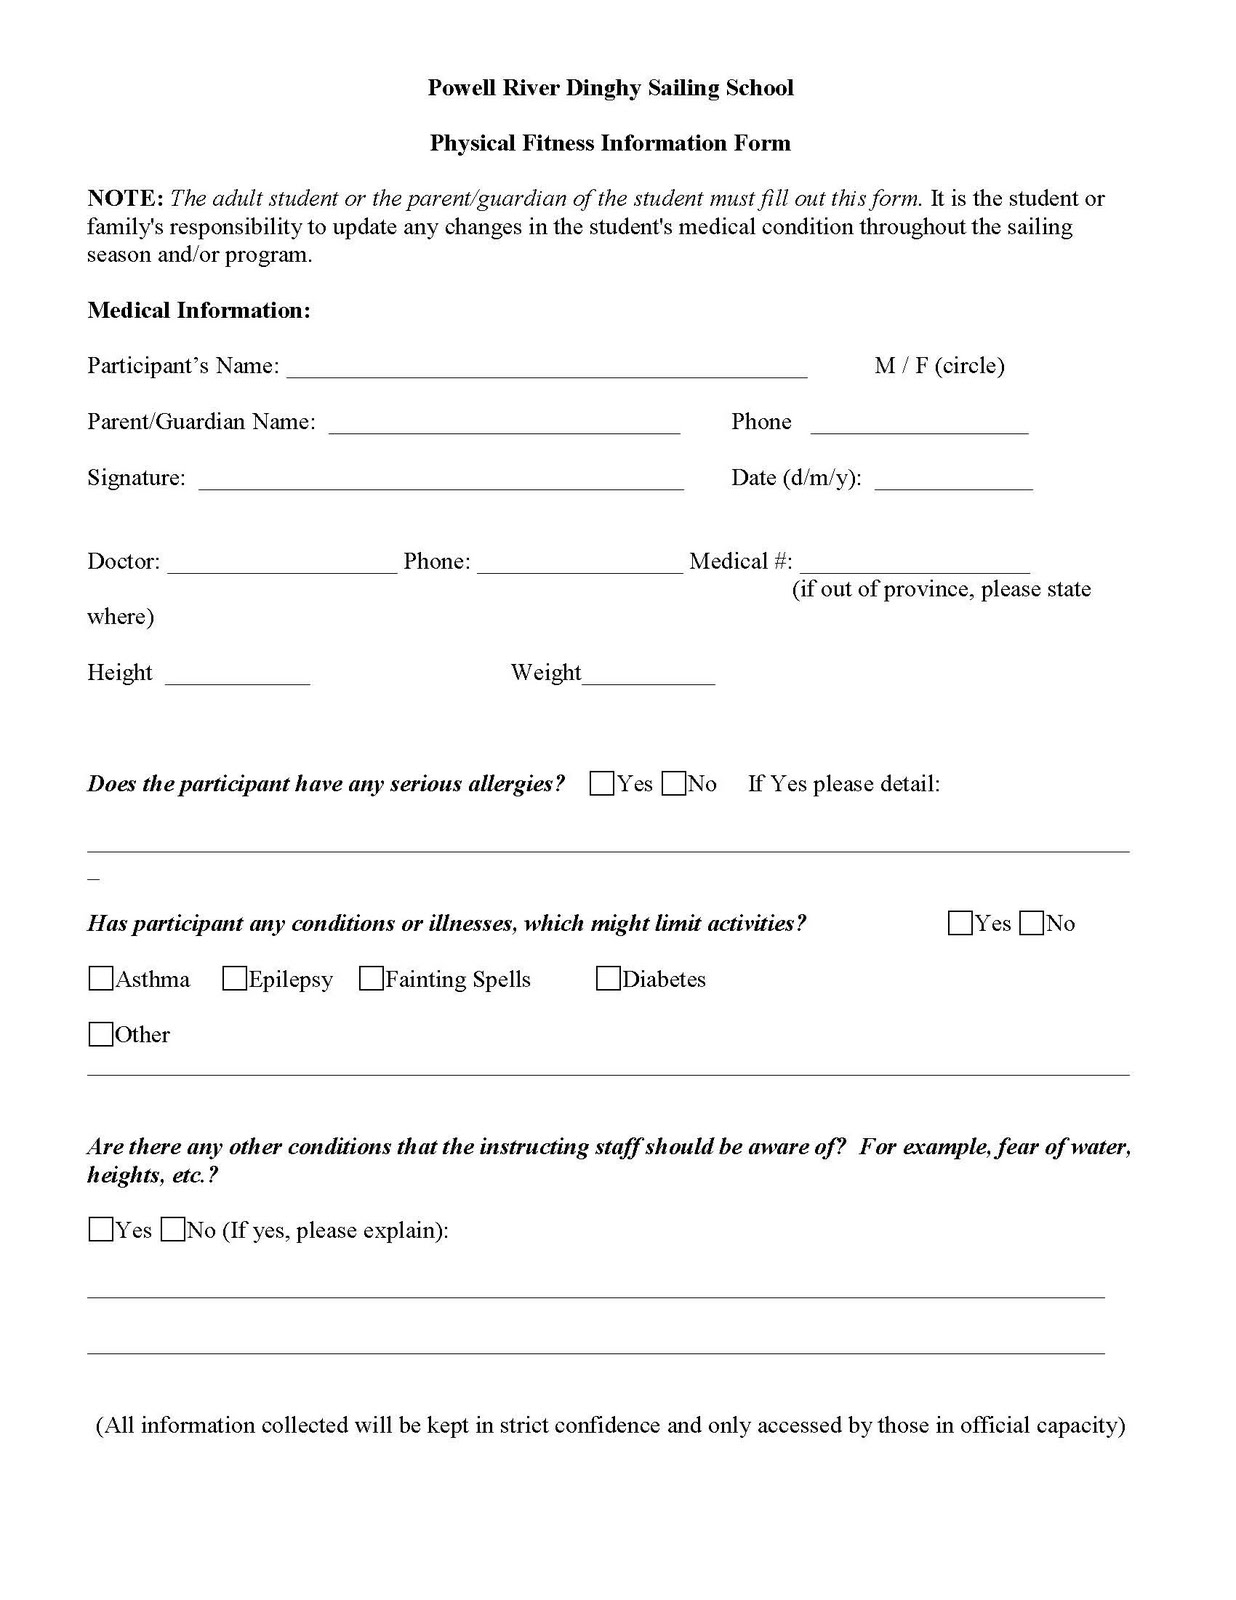 School enrollment form template pronofoot35fo Image collections